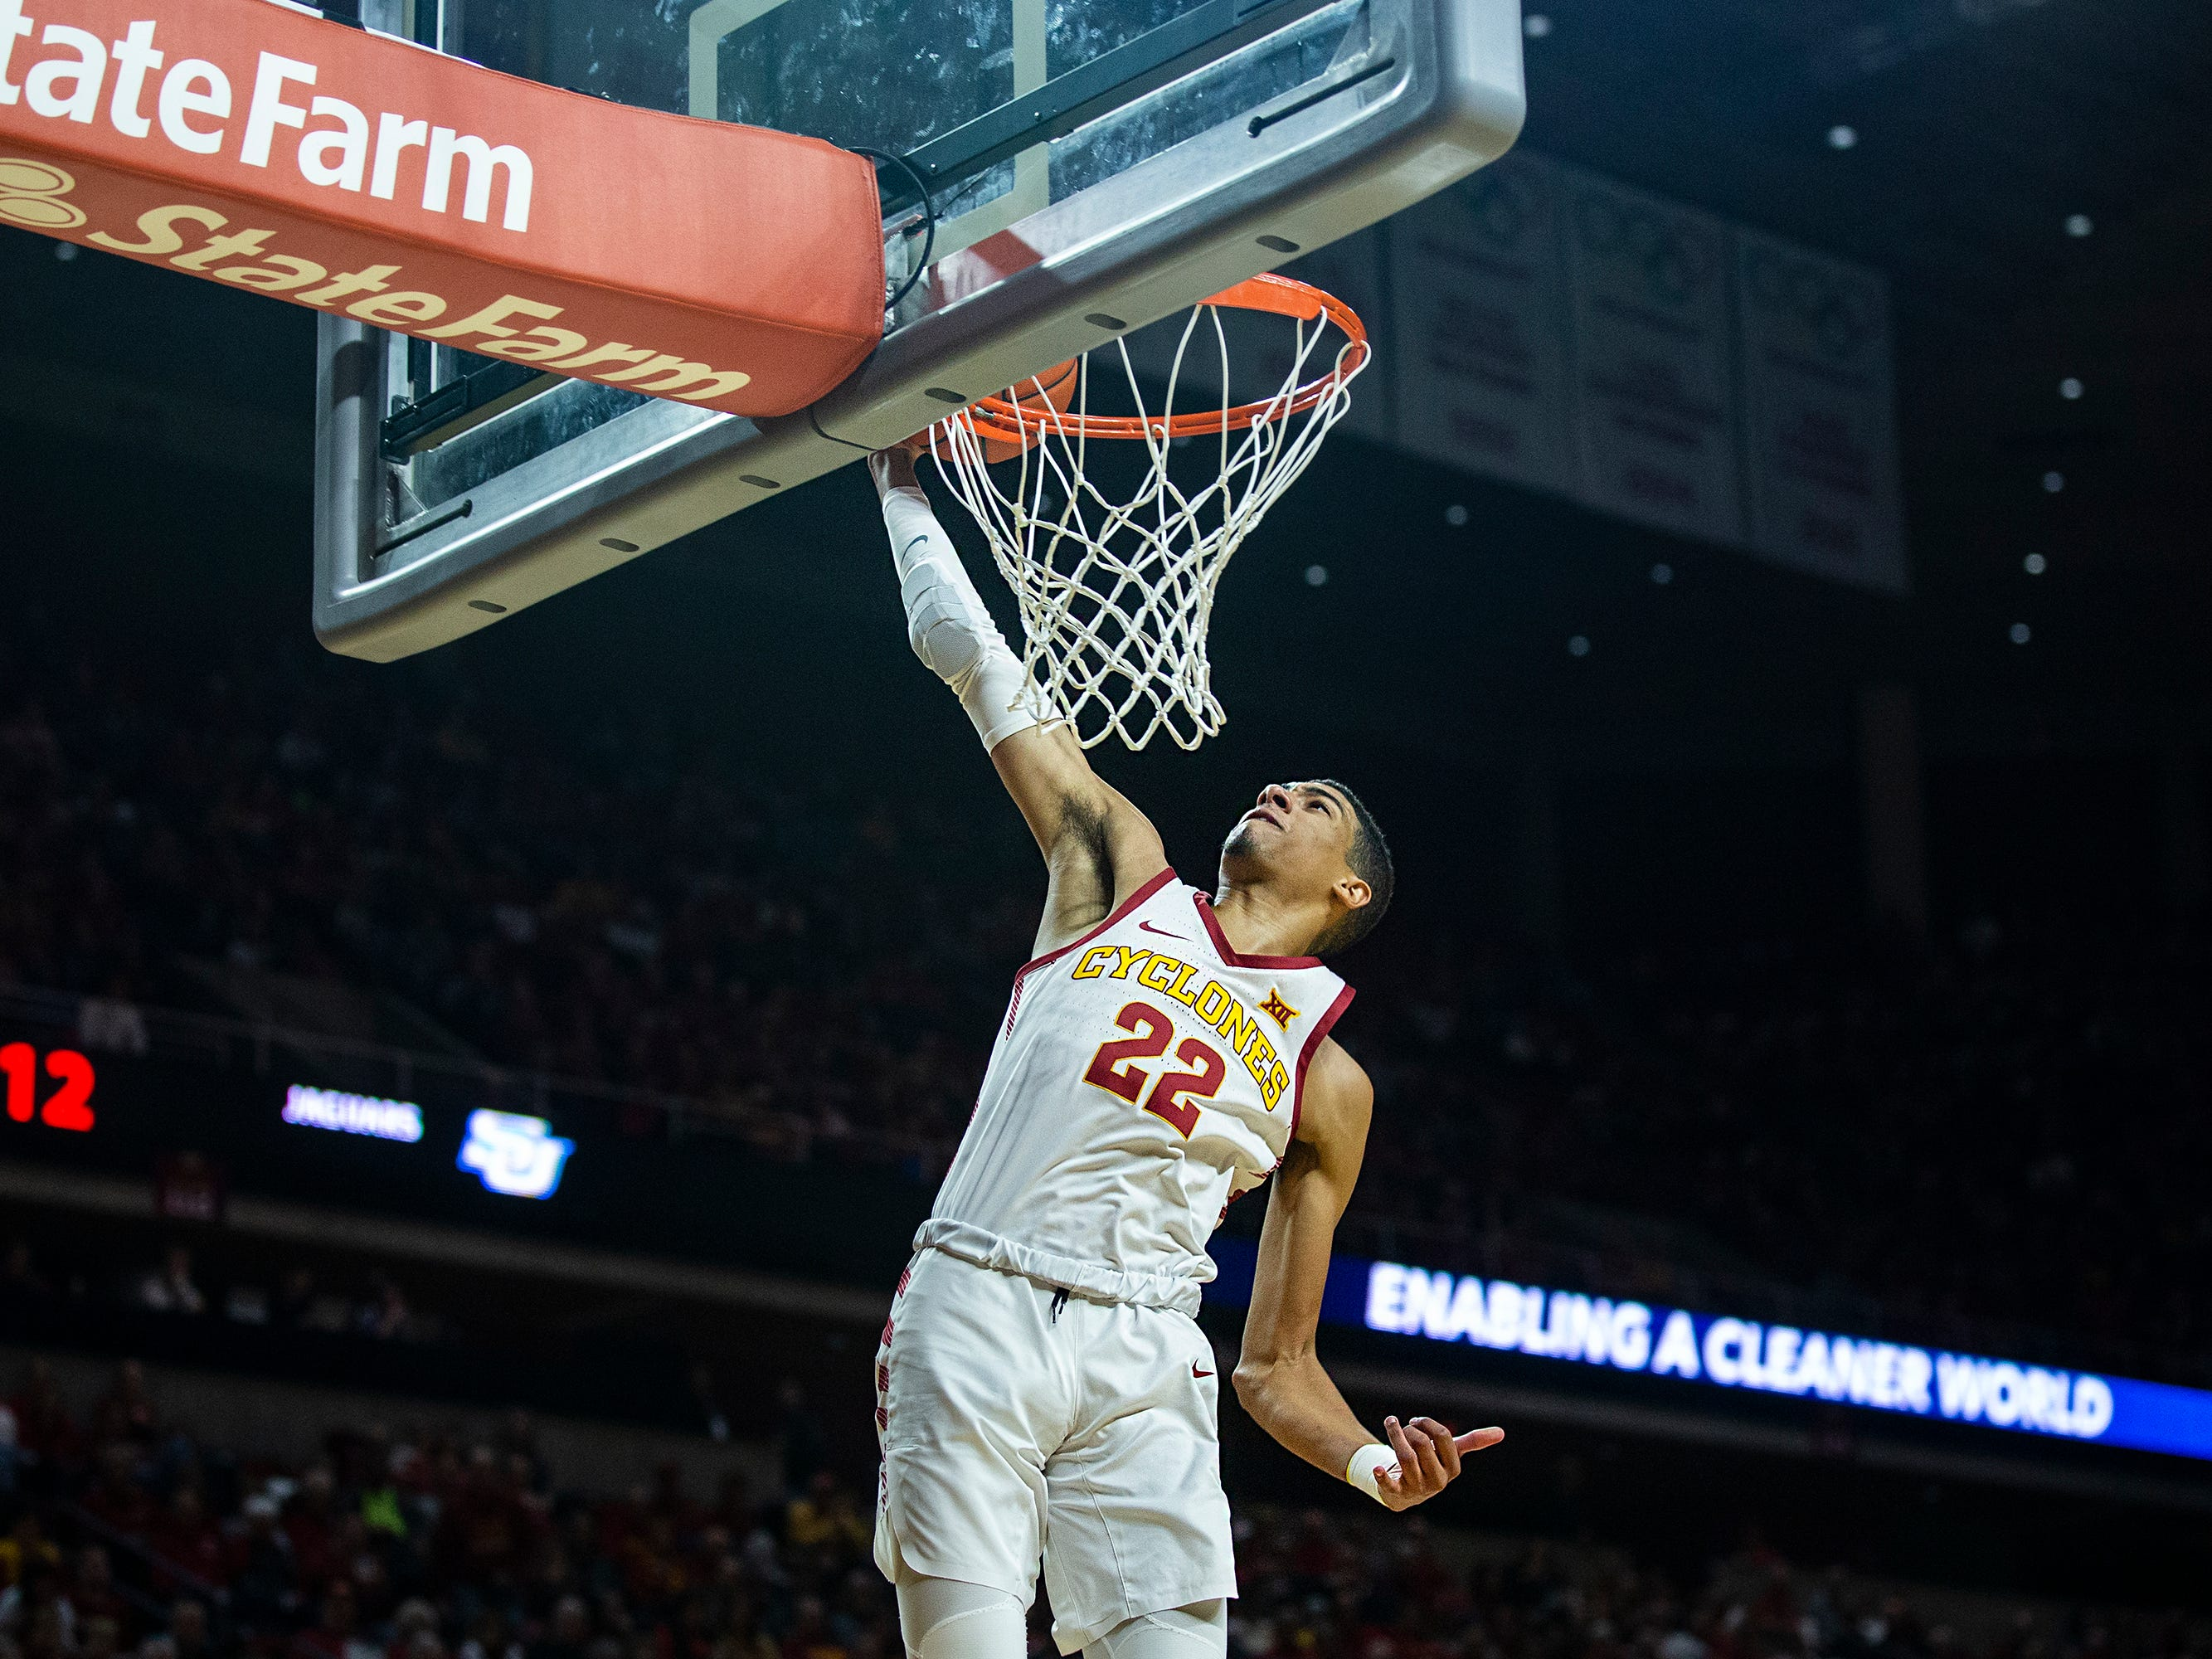 Iowa State's Tyrese Haliburton shoots the ball during the Iowa State men's basketball game against Southern on Sunday, Dec. 9, 2018, in Hilton Coliseum.